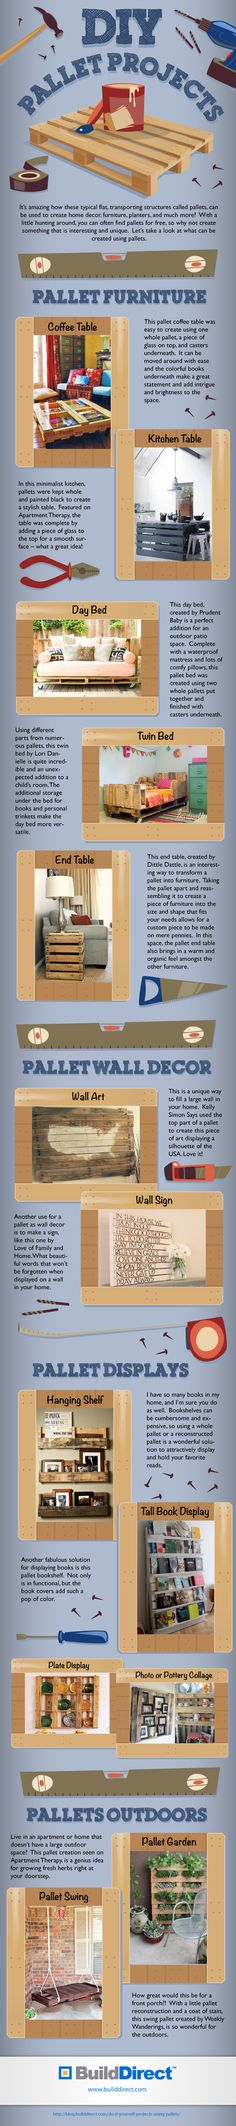 Great ideas to turn your regular pallet into a creative and beautiful piece of furniture or decor!  Which is your favorite? Click on the graphic or visit http://ow.ly/oyGJL to read more.